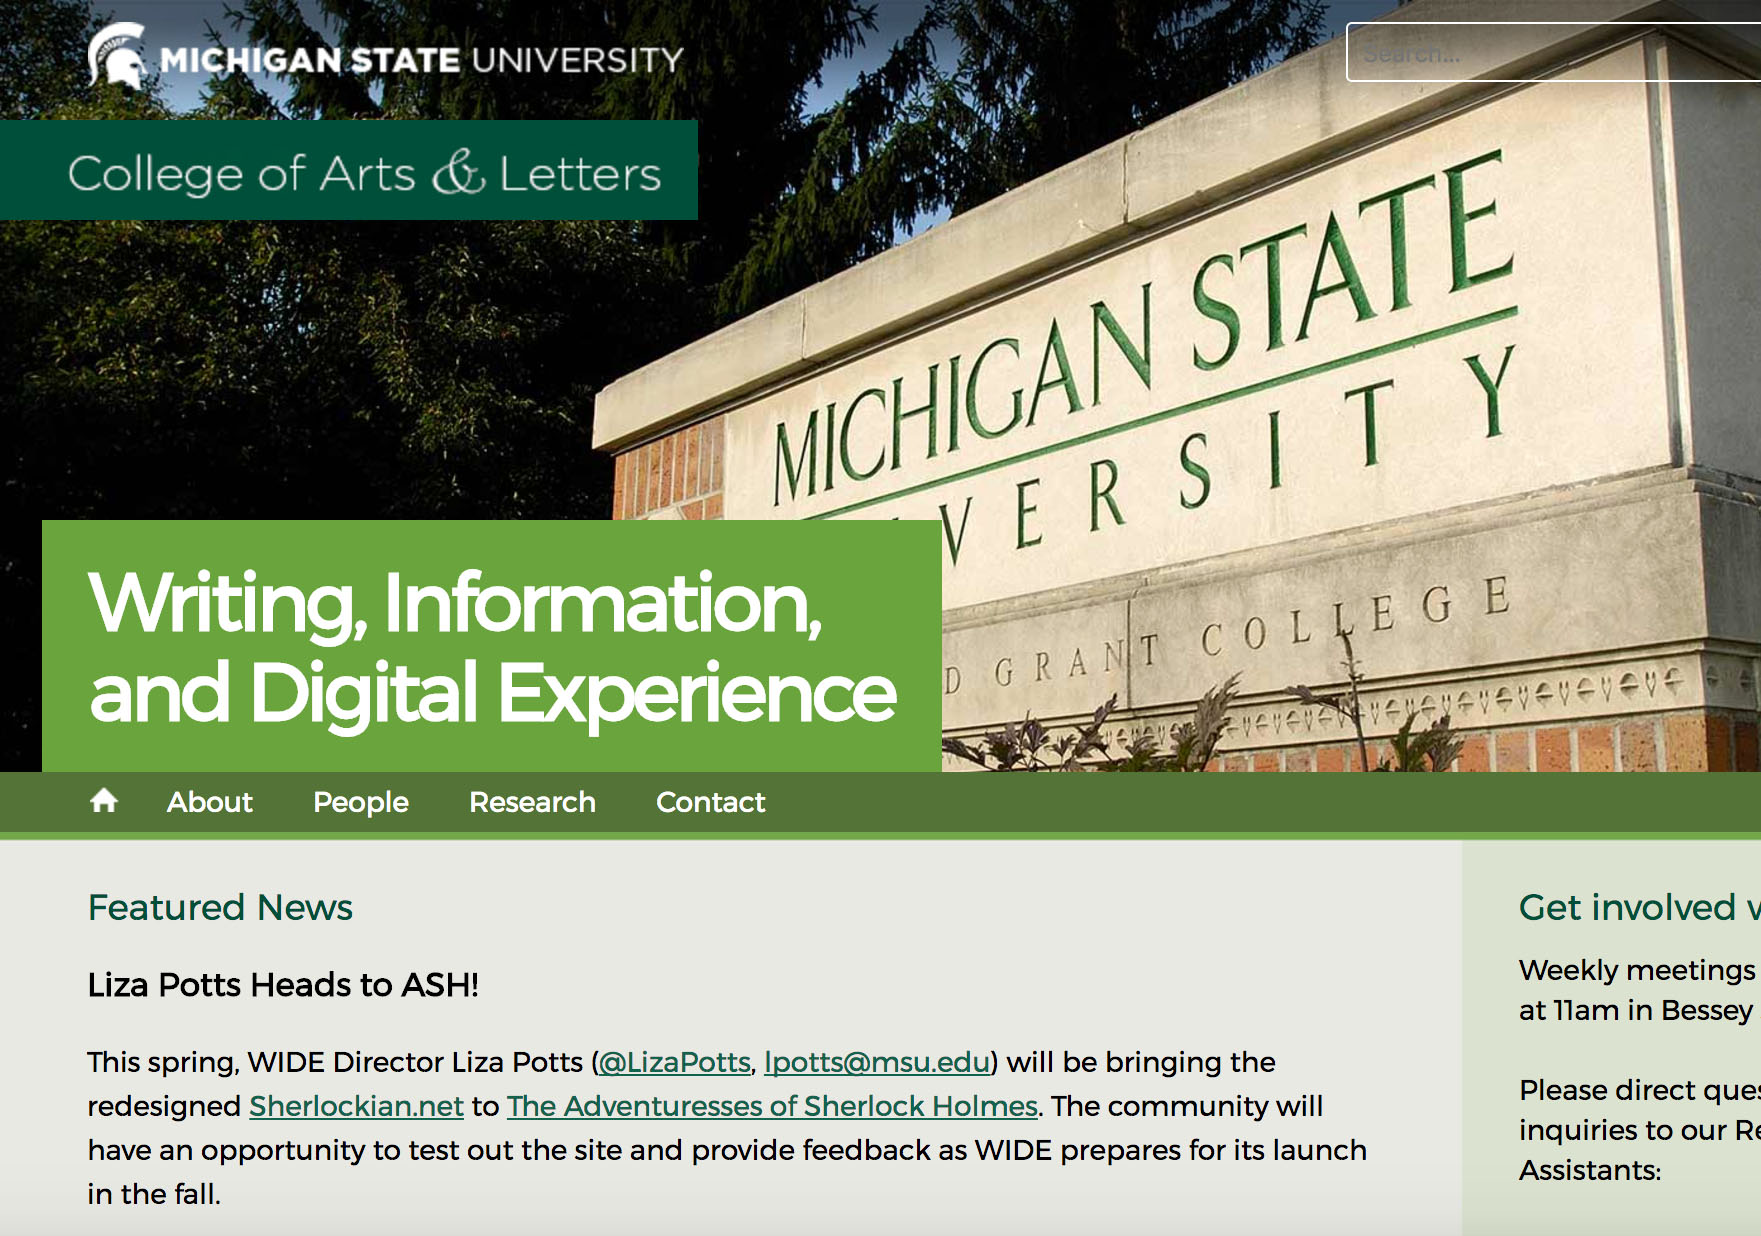 In 2016 I was asked to help with the front end design and web development of a digital book being researched and published by Michigan State University's Wide Research Center.